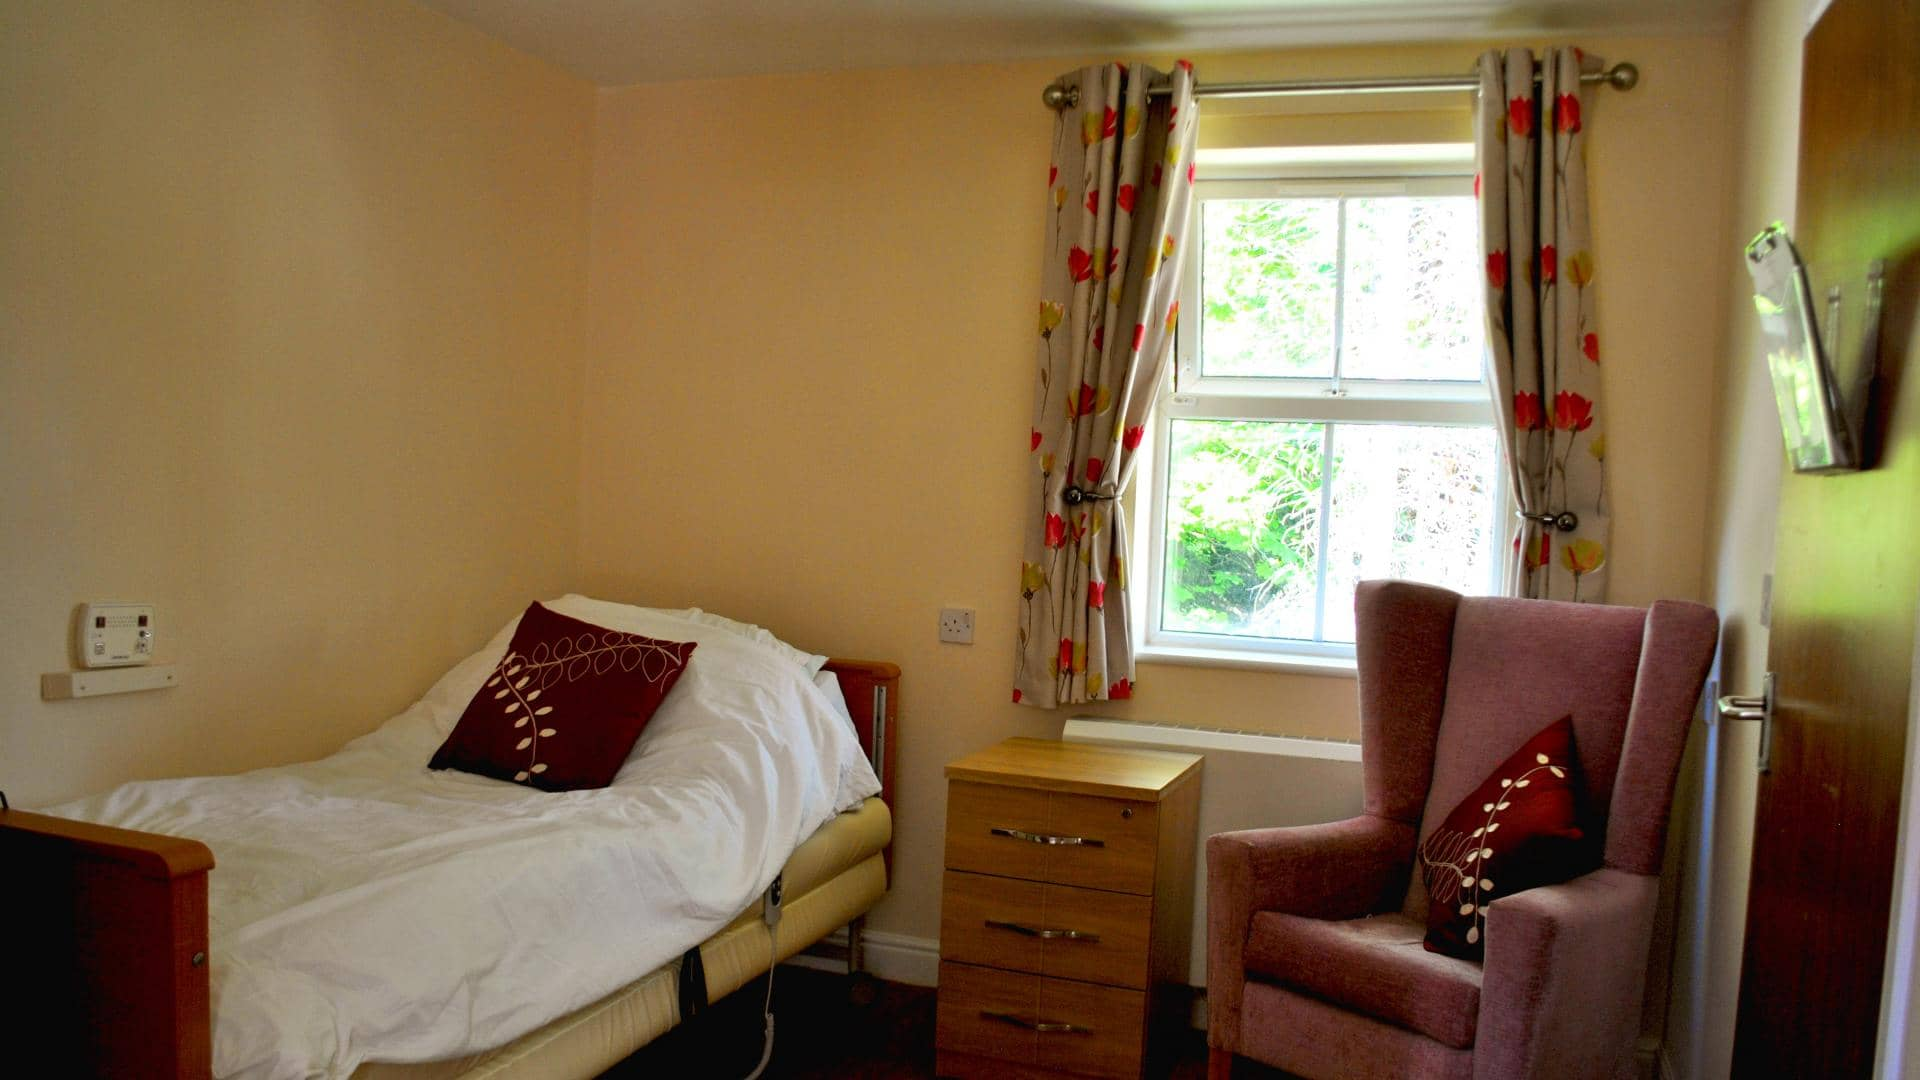 Eaton Court Care Home, Bedroom